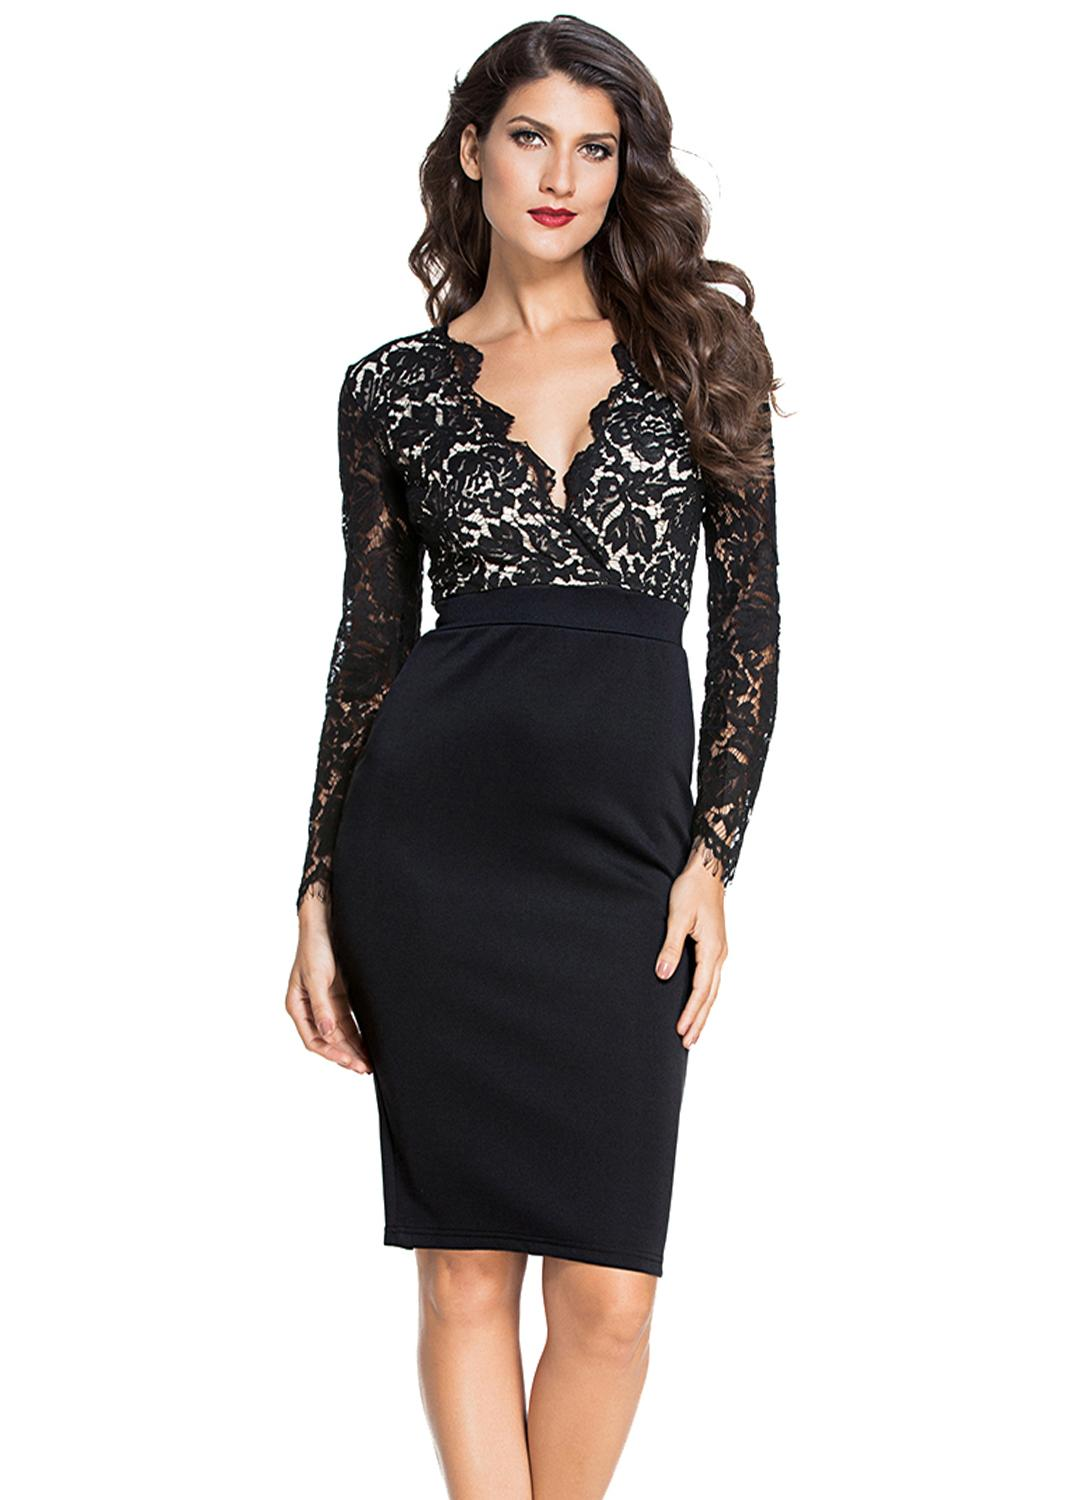 black s Black Lace Nude Illusion Long Sleeves Dress - Chicuu